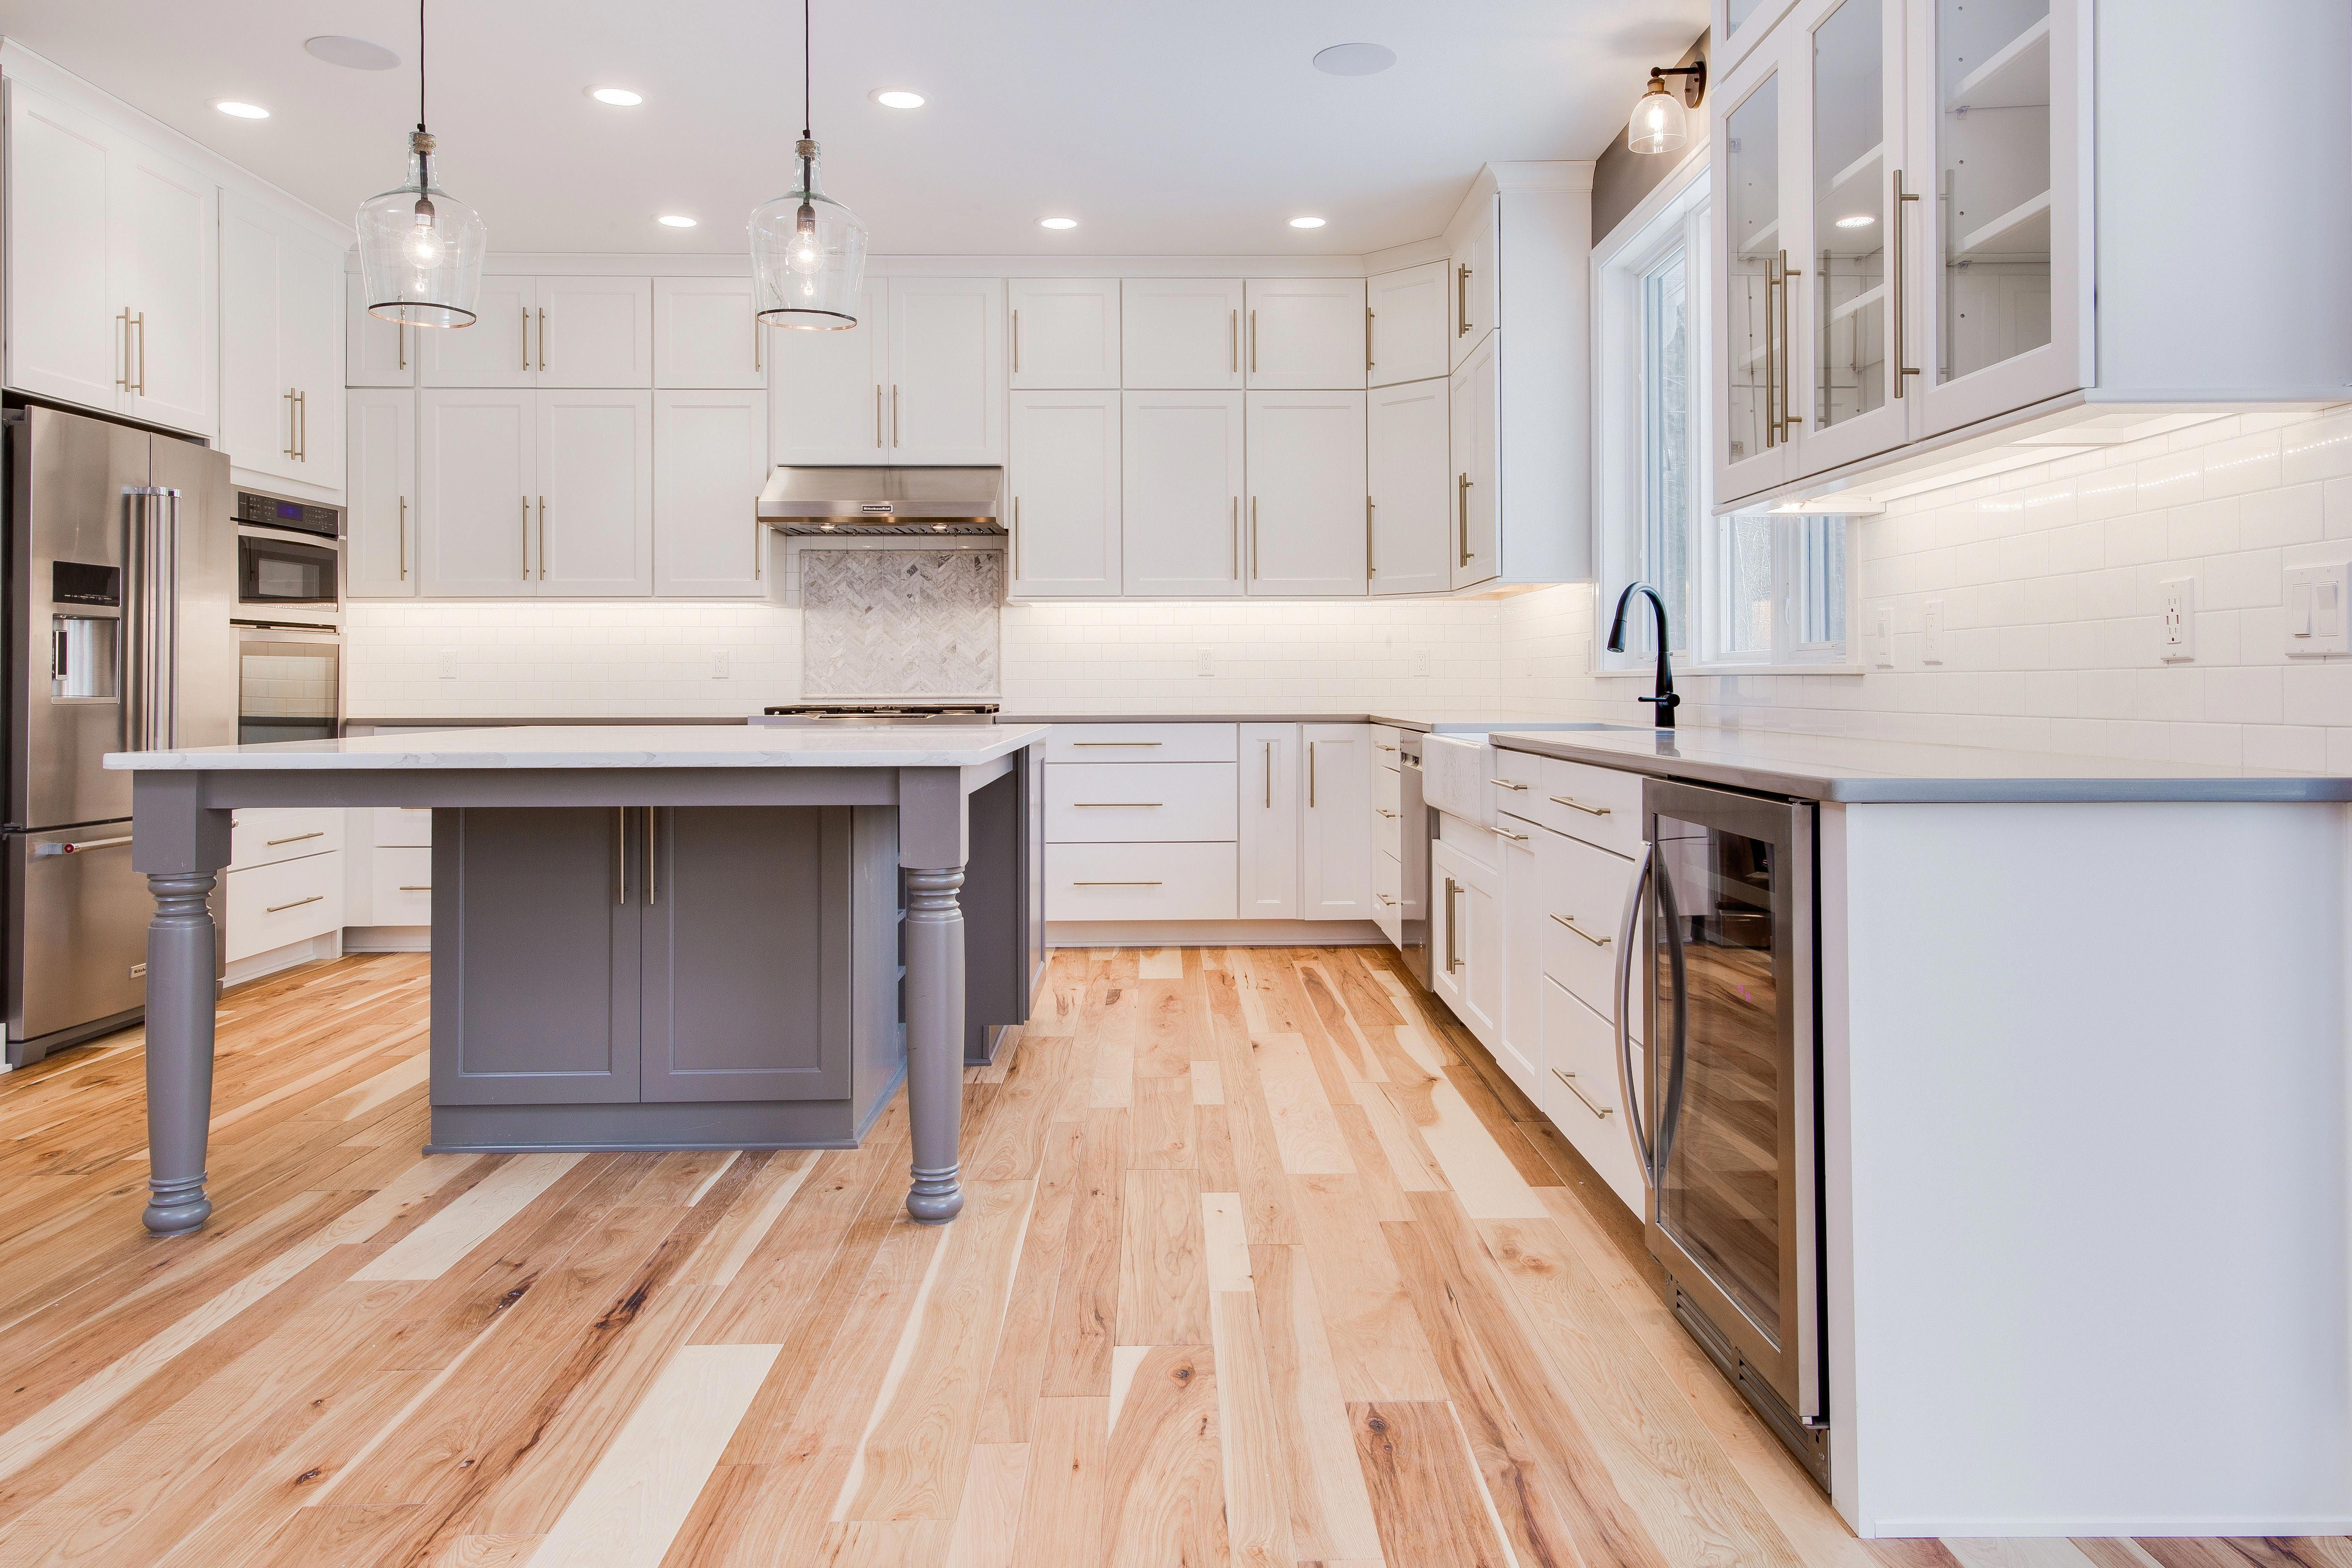 Kücheninsel Oval Kitchen Natural Hickory Hardwood Floors Contrasting Painted